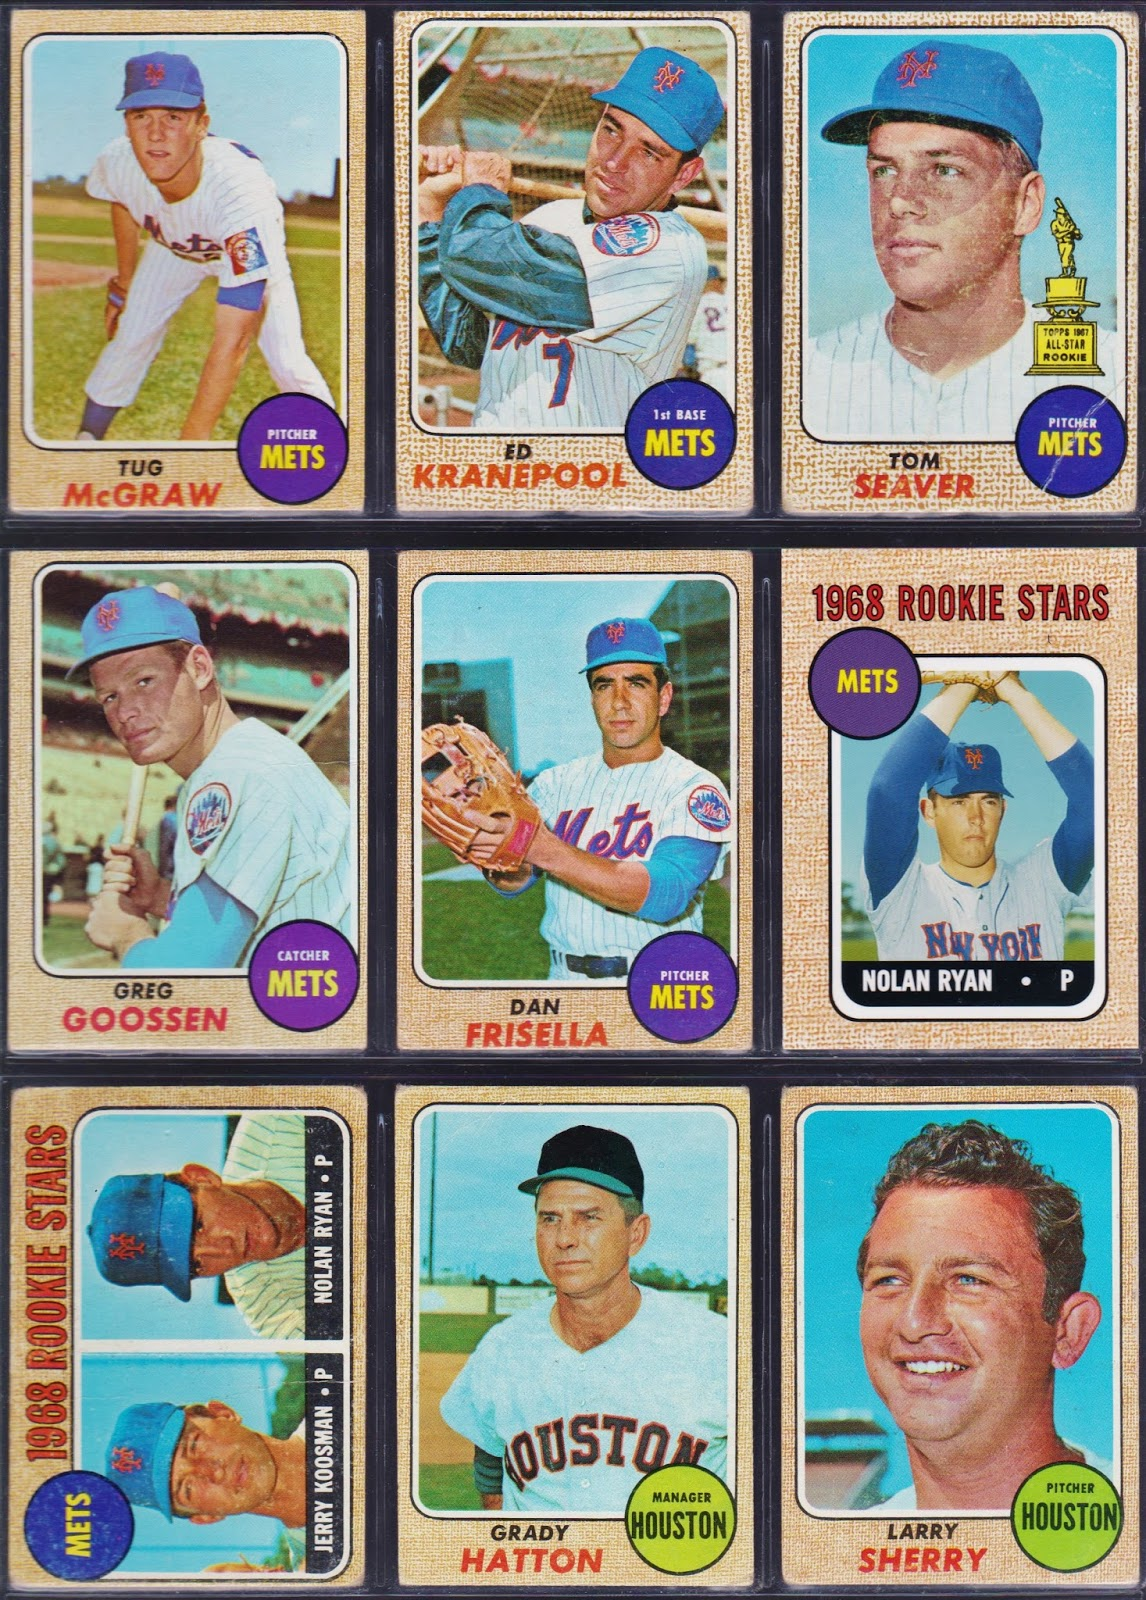 20th Century Topps Baseball Completing The 1968 Topps